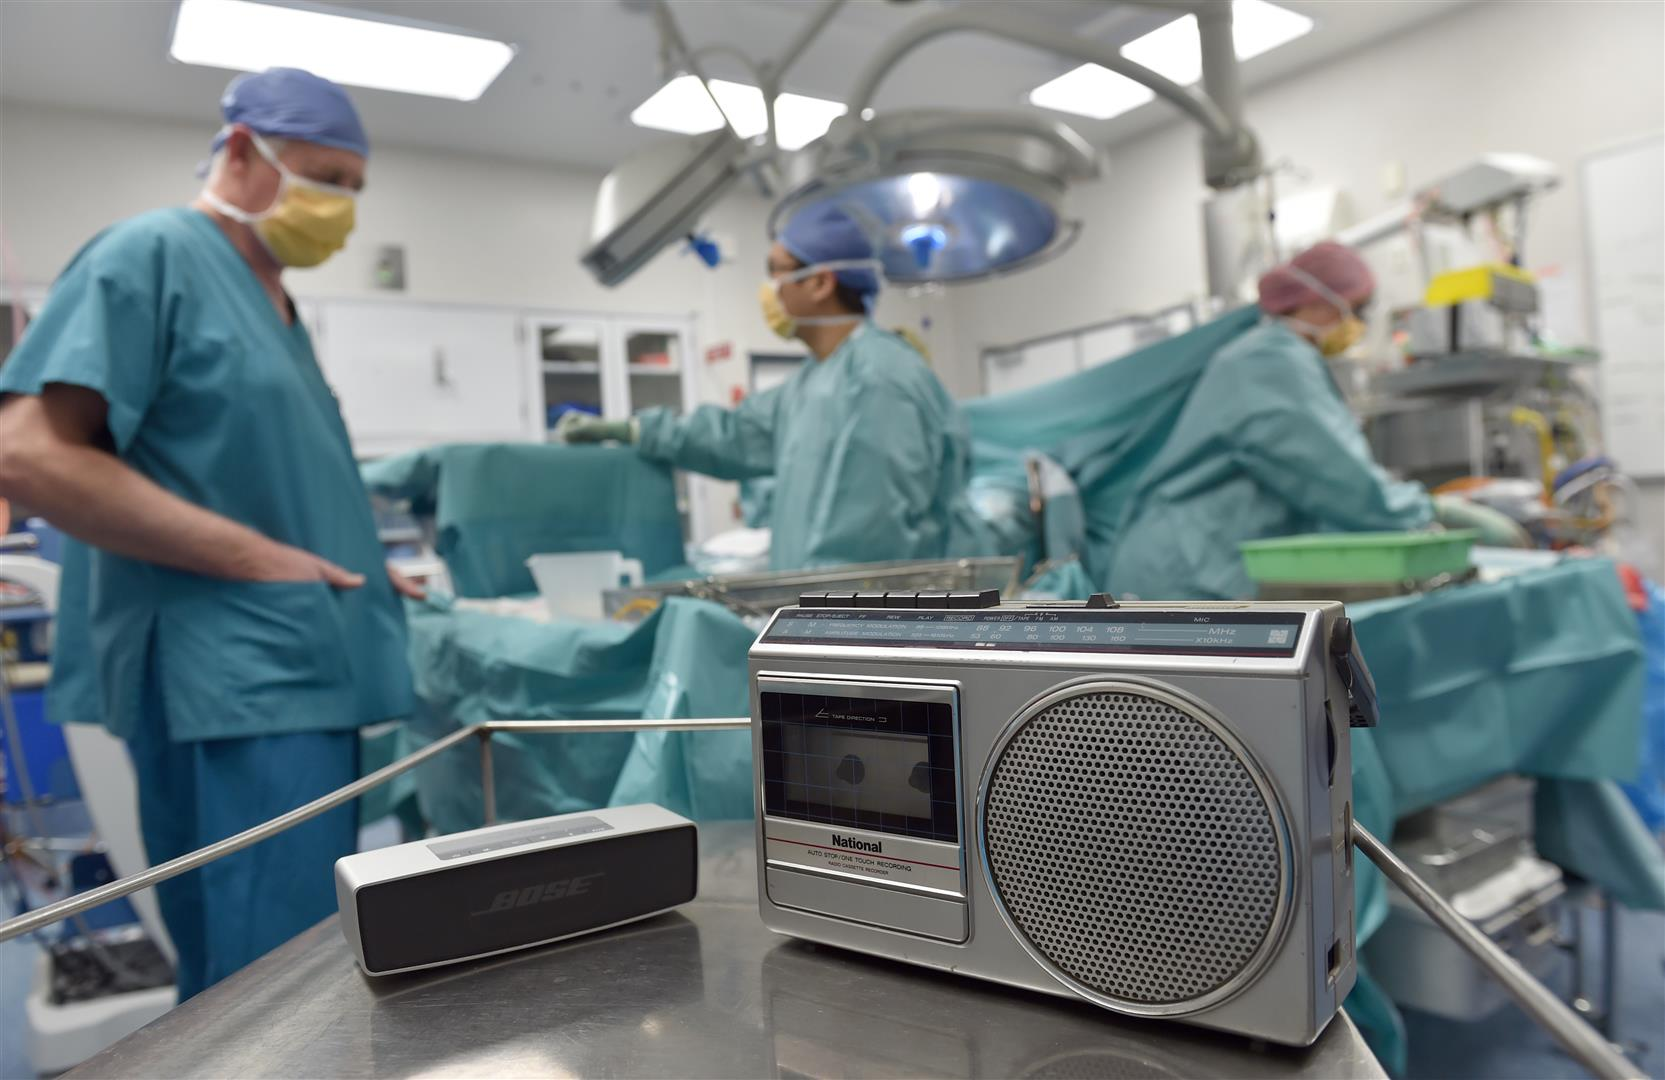 Teams at Dunedin Hospital regularly have music on in the background while they work. PHOTO: PETER...